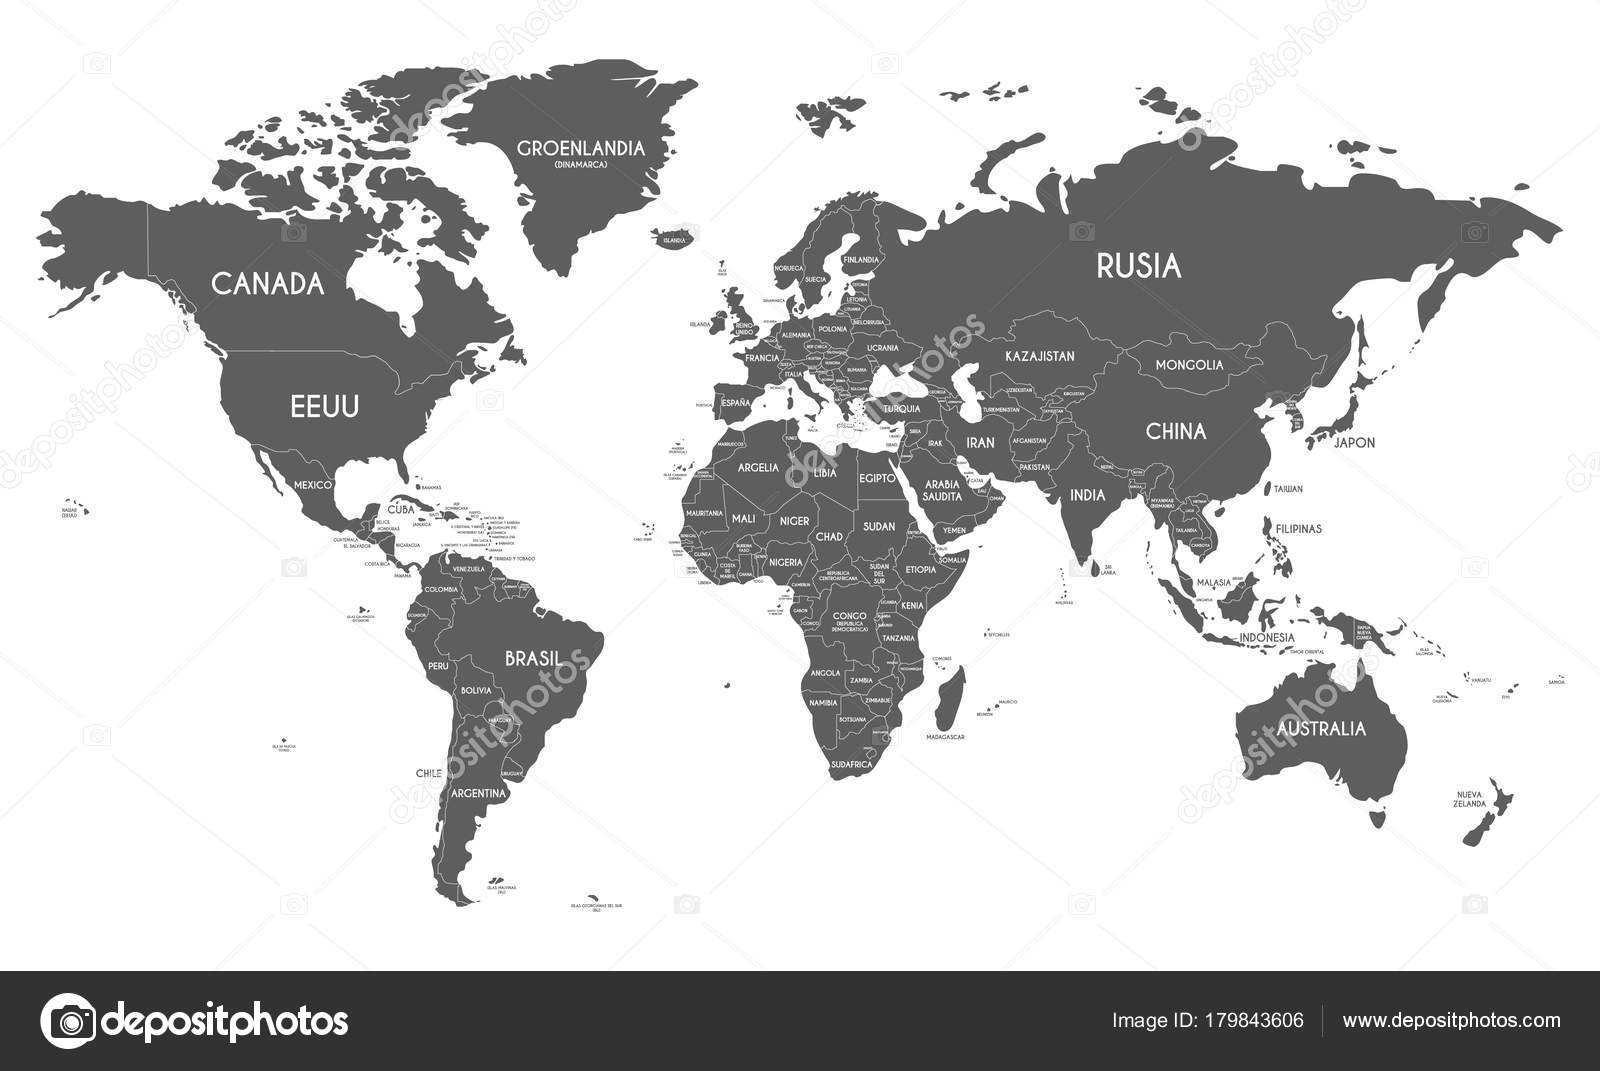 Political world map vector illustration isolated on white background political world map vector illustration isolated on white background with country names in spanish editable gumiabroncs Image collections